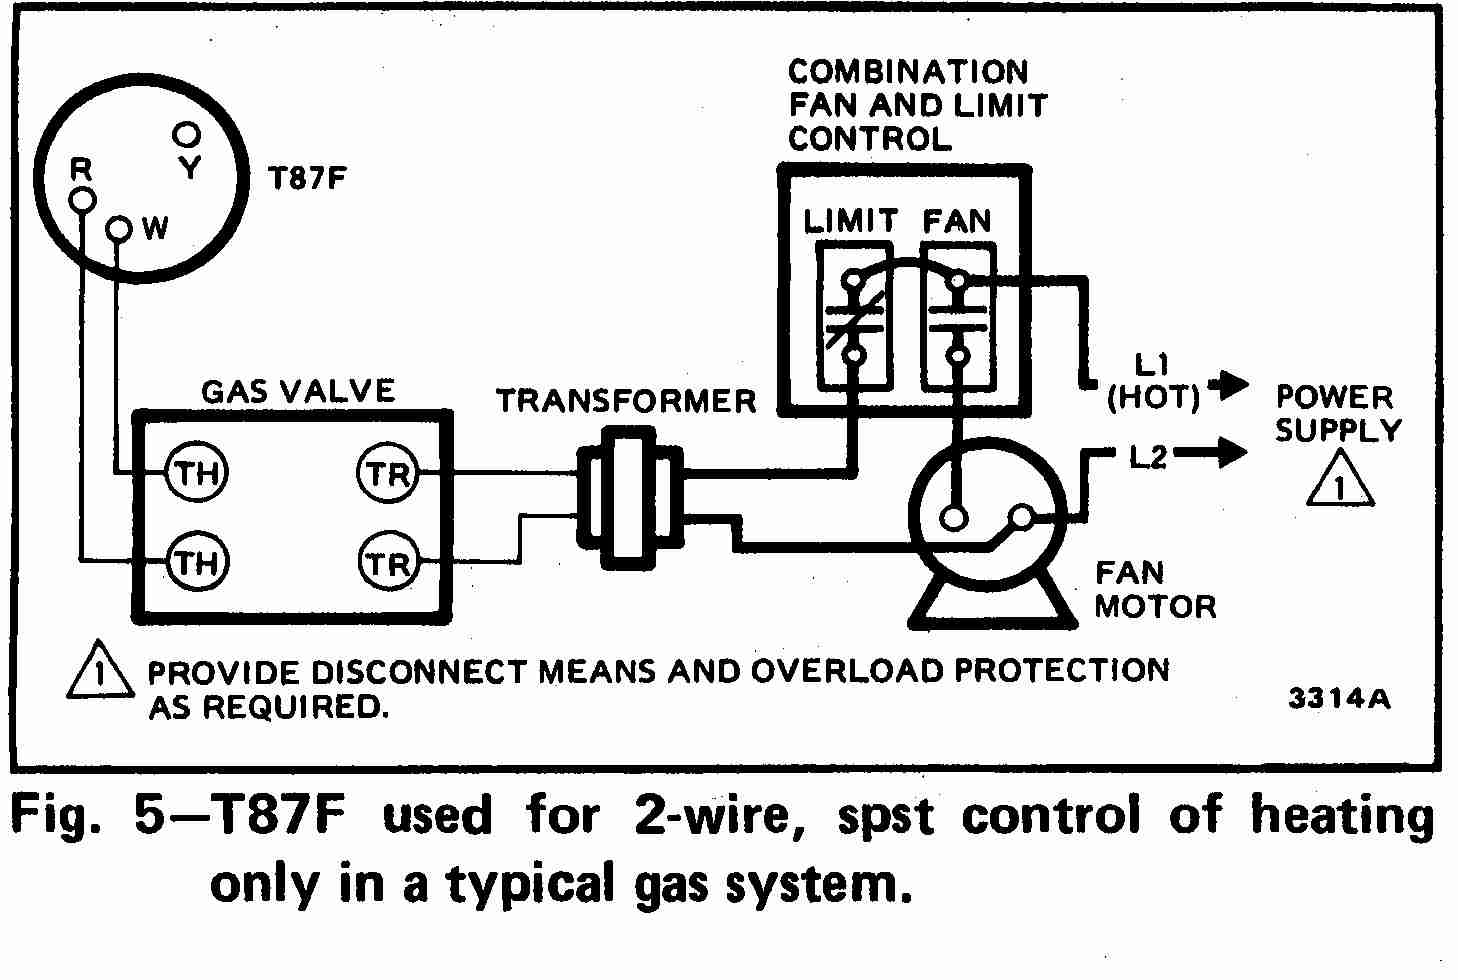 room thermostat wiring diagrams for hvac systems wiring diagram thermostat heat pump honeywell t87f thermostat wiring diagram for 2 wire, spst control of heating only in